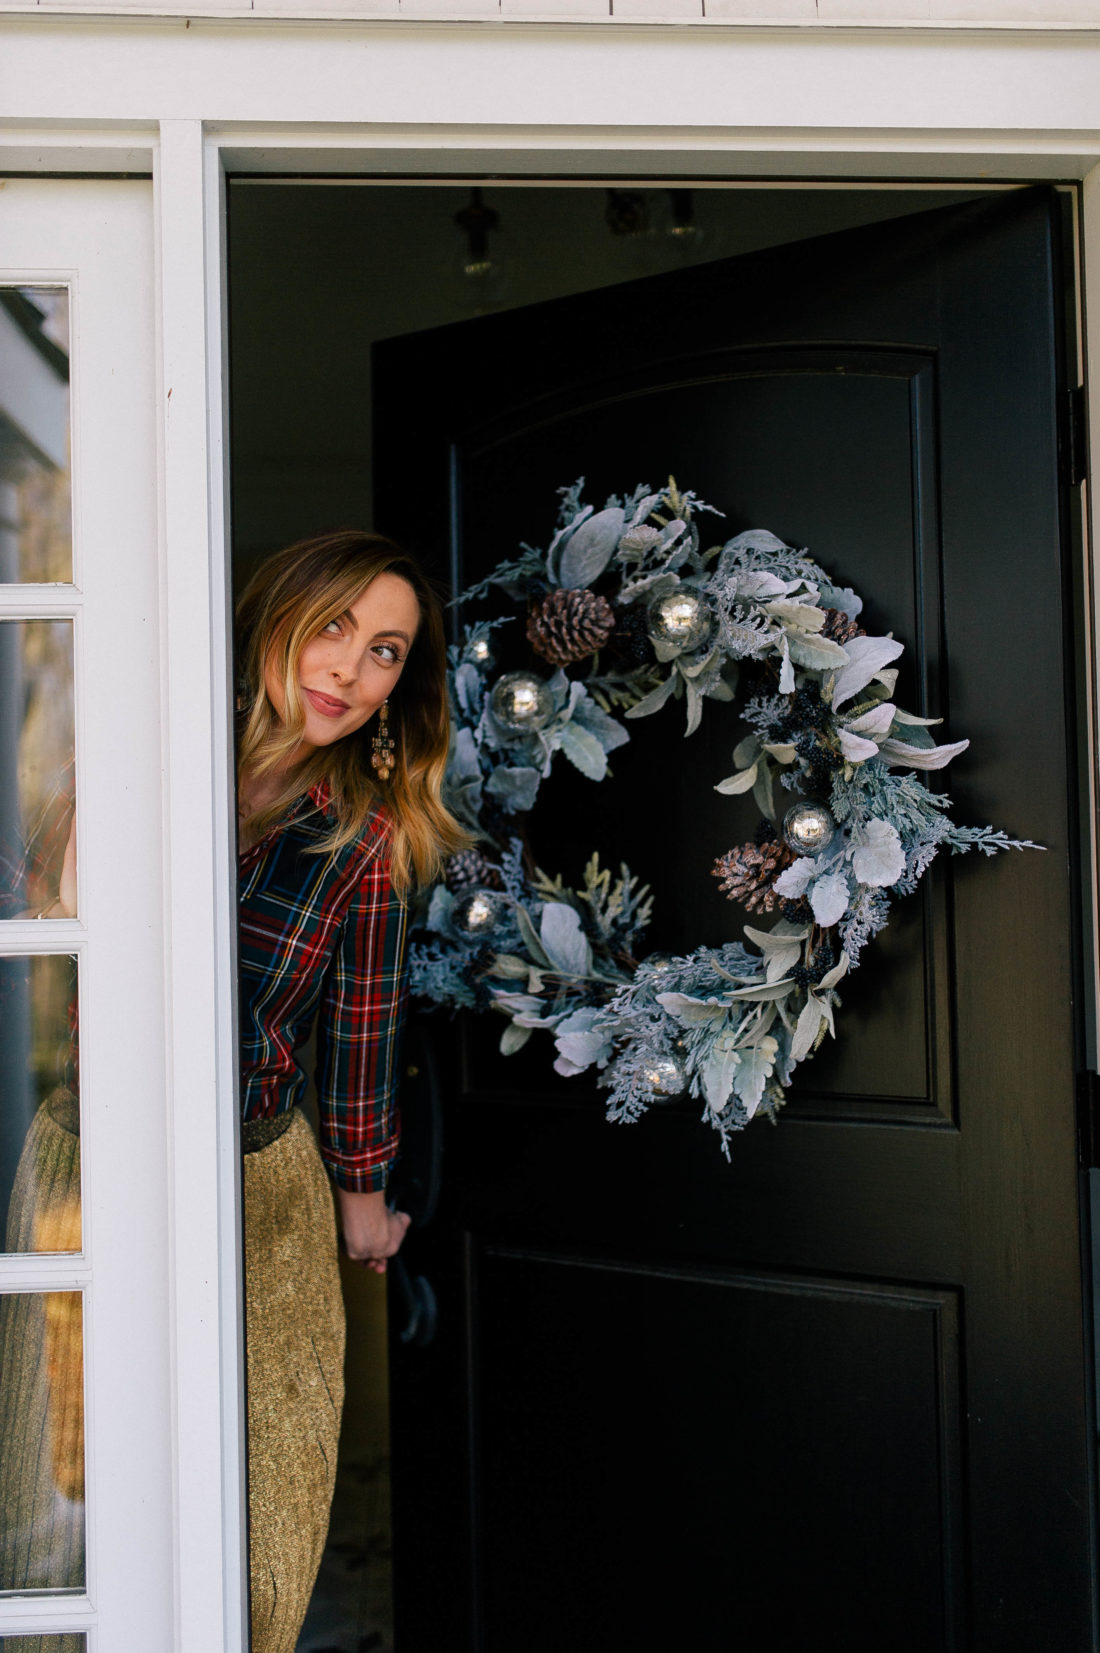 Eva Amurri Martino Ks Out Behind Her Front Door Which Is Adorned With A Blue And